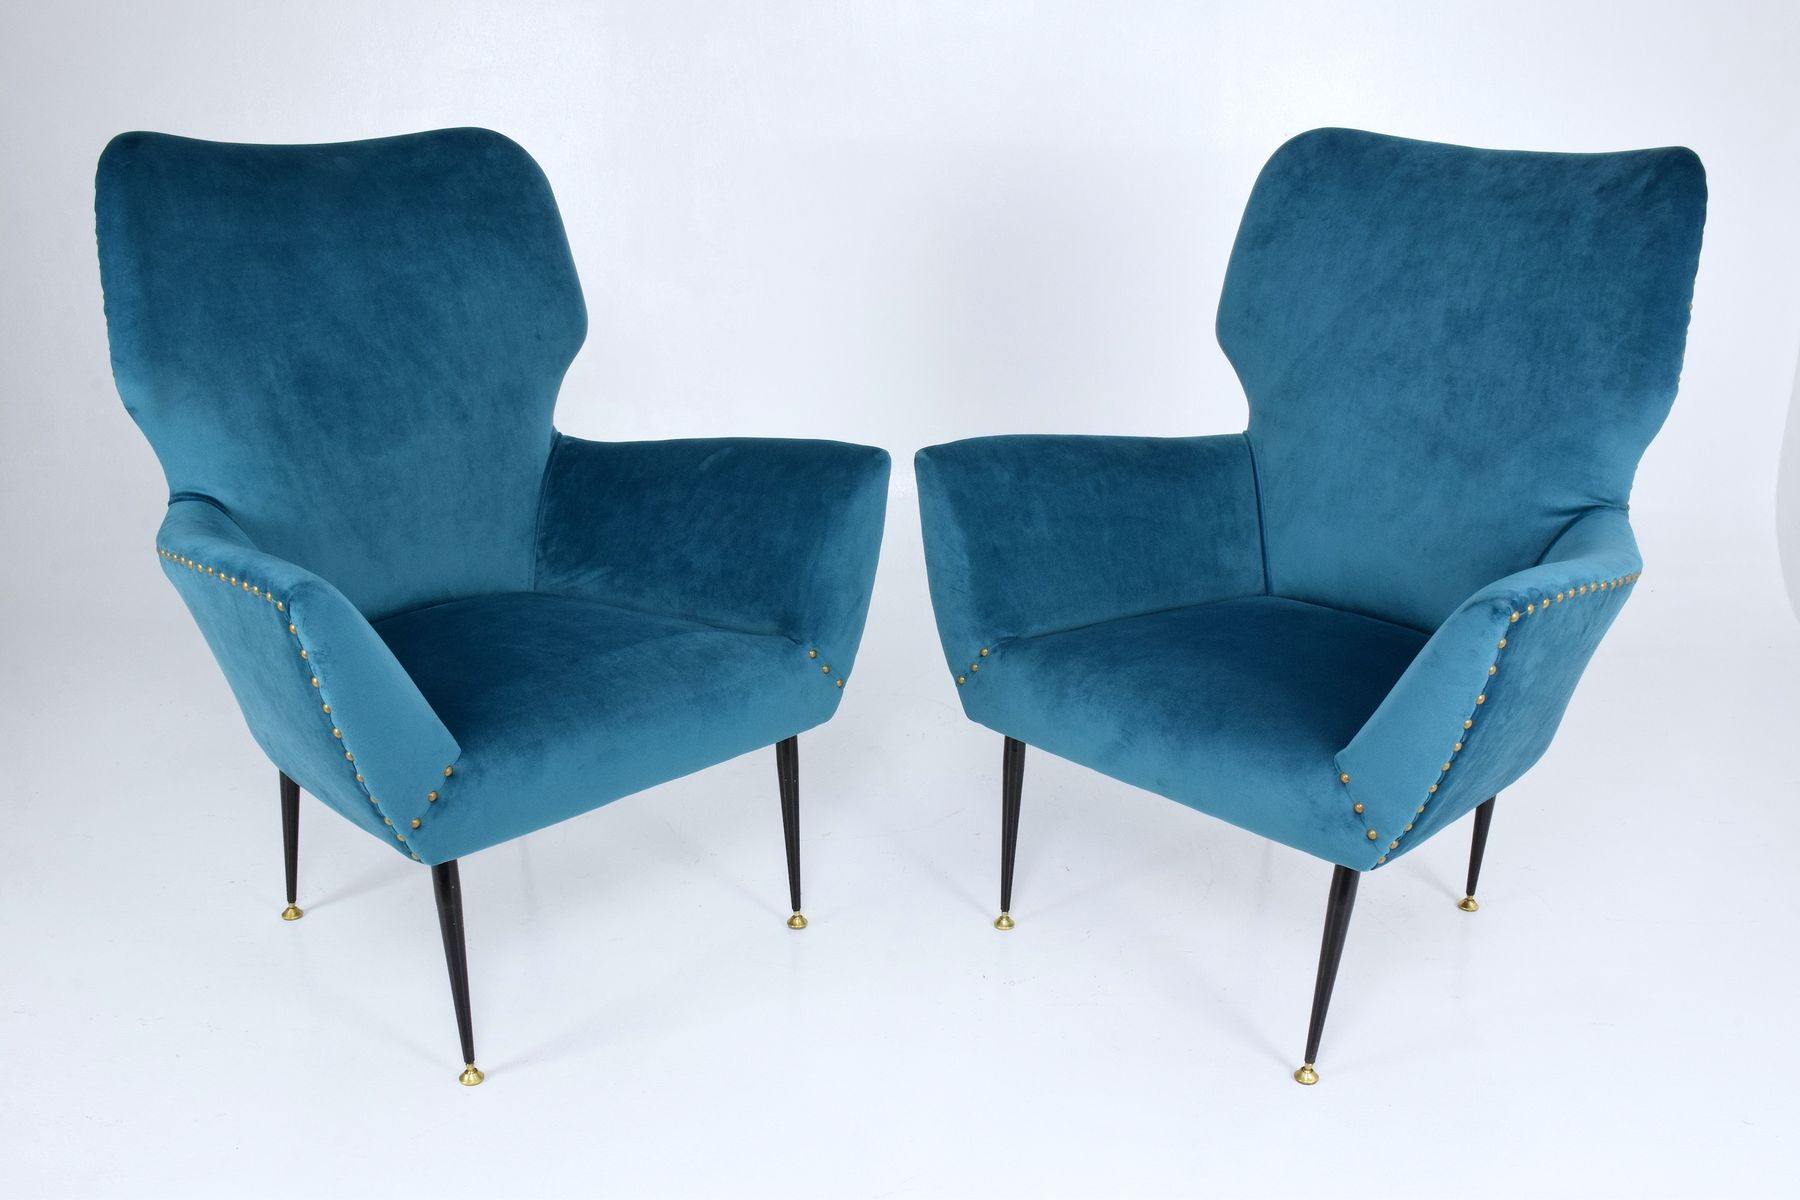 Italian Curved Lounge Chairs 1950s Set of 2 for sale at Pamono